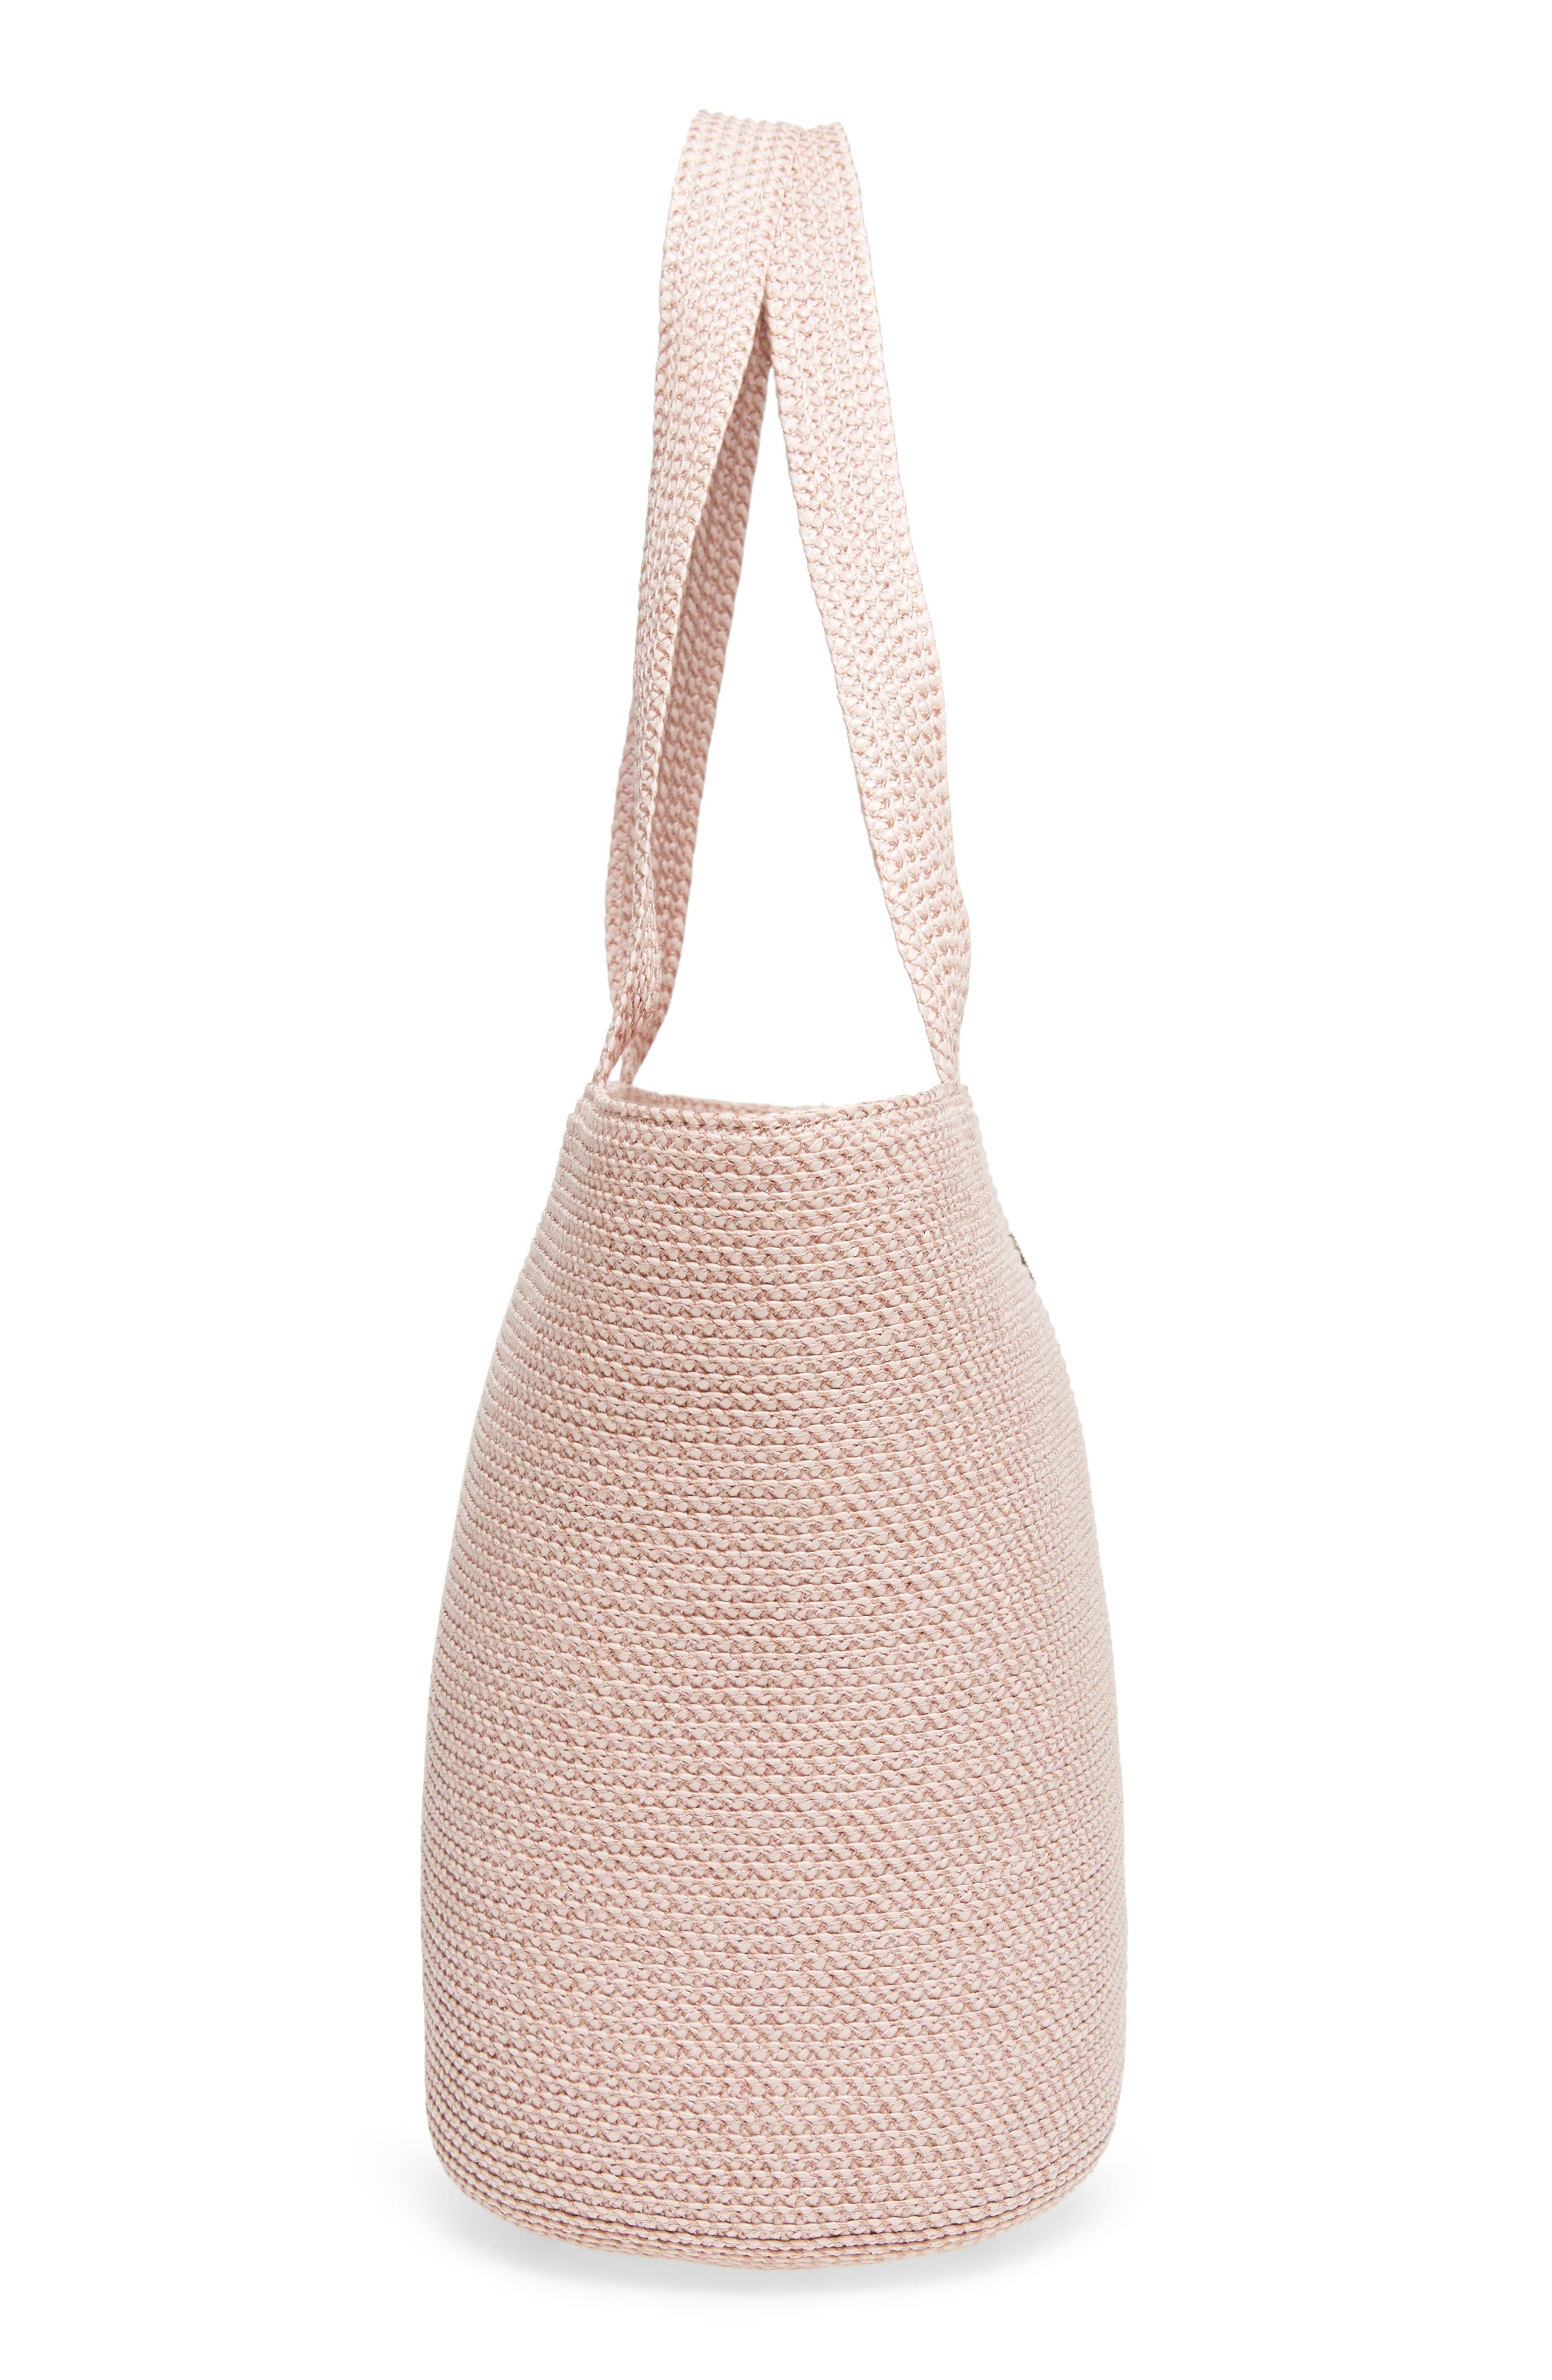 Squishee<sup>®</sup> Tote,                             Alternate thumbnail 5, color,                             BLUSH